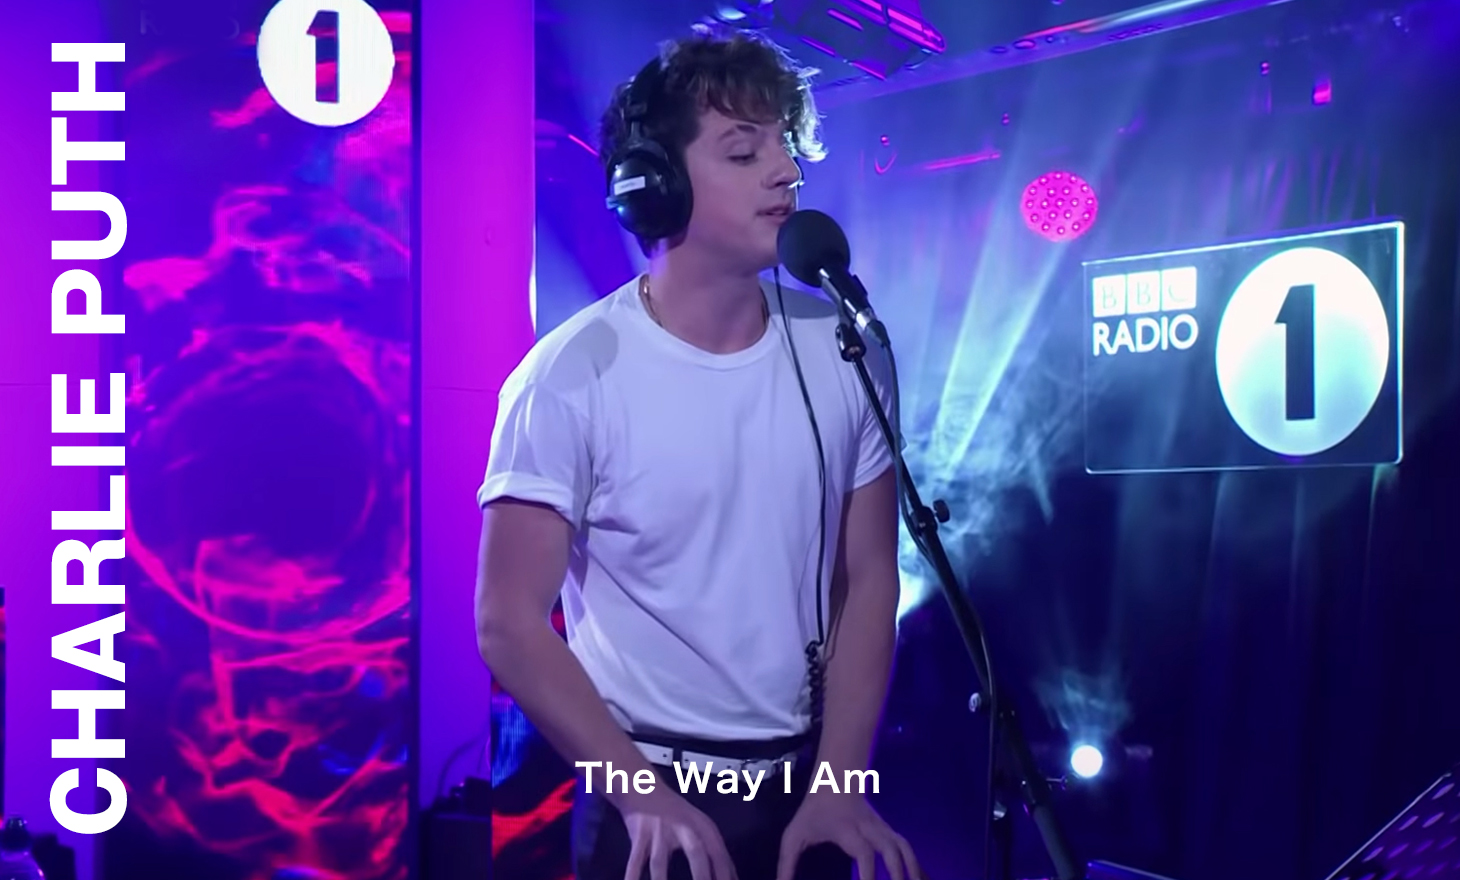 Charlie Puth : The Way I Am